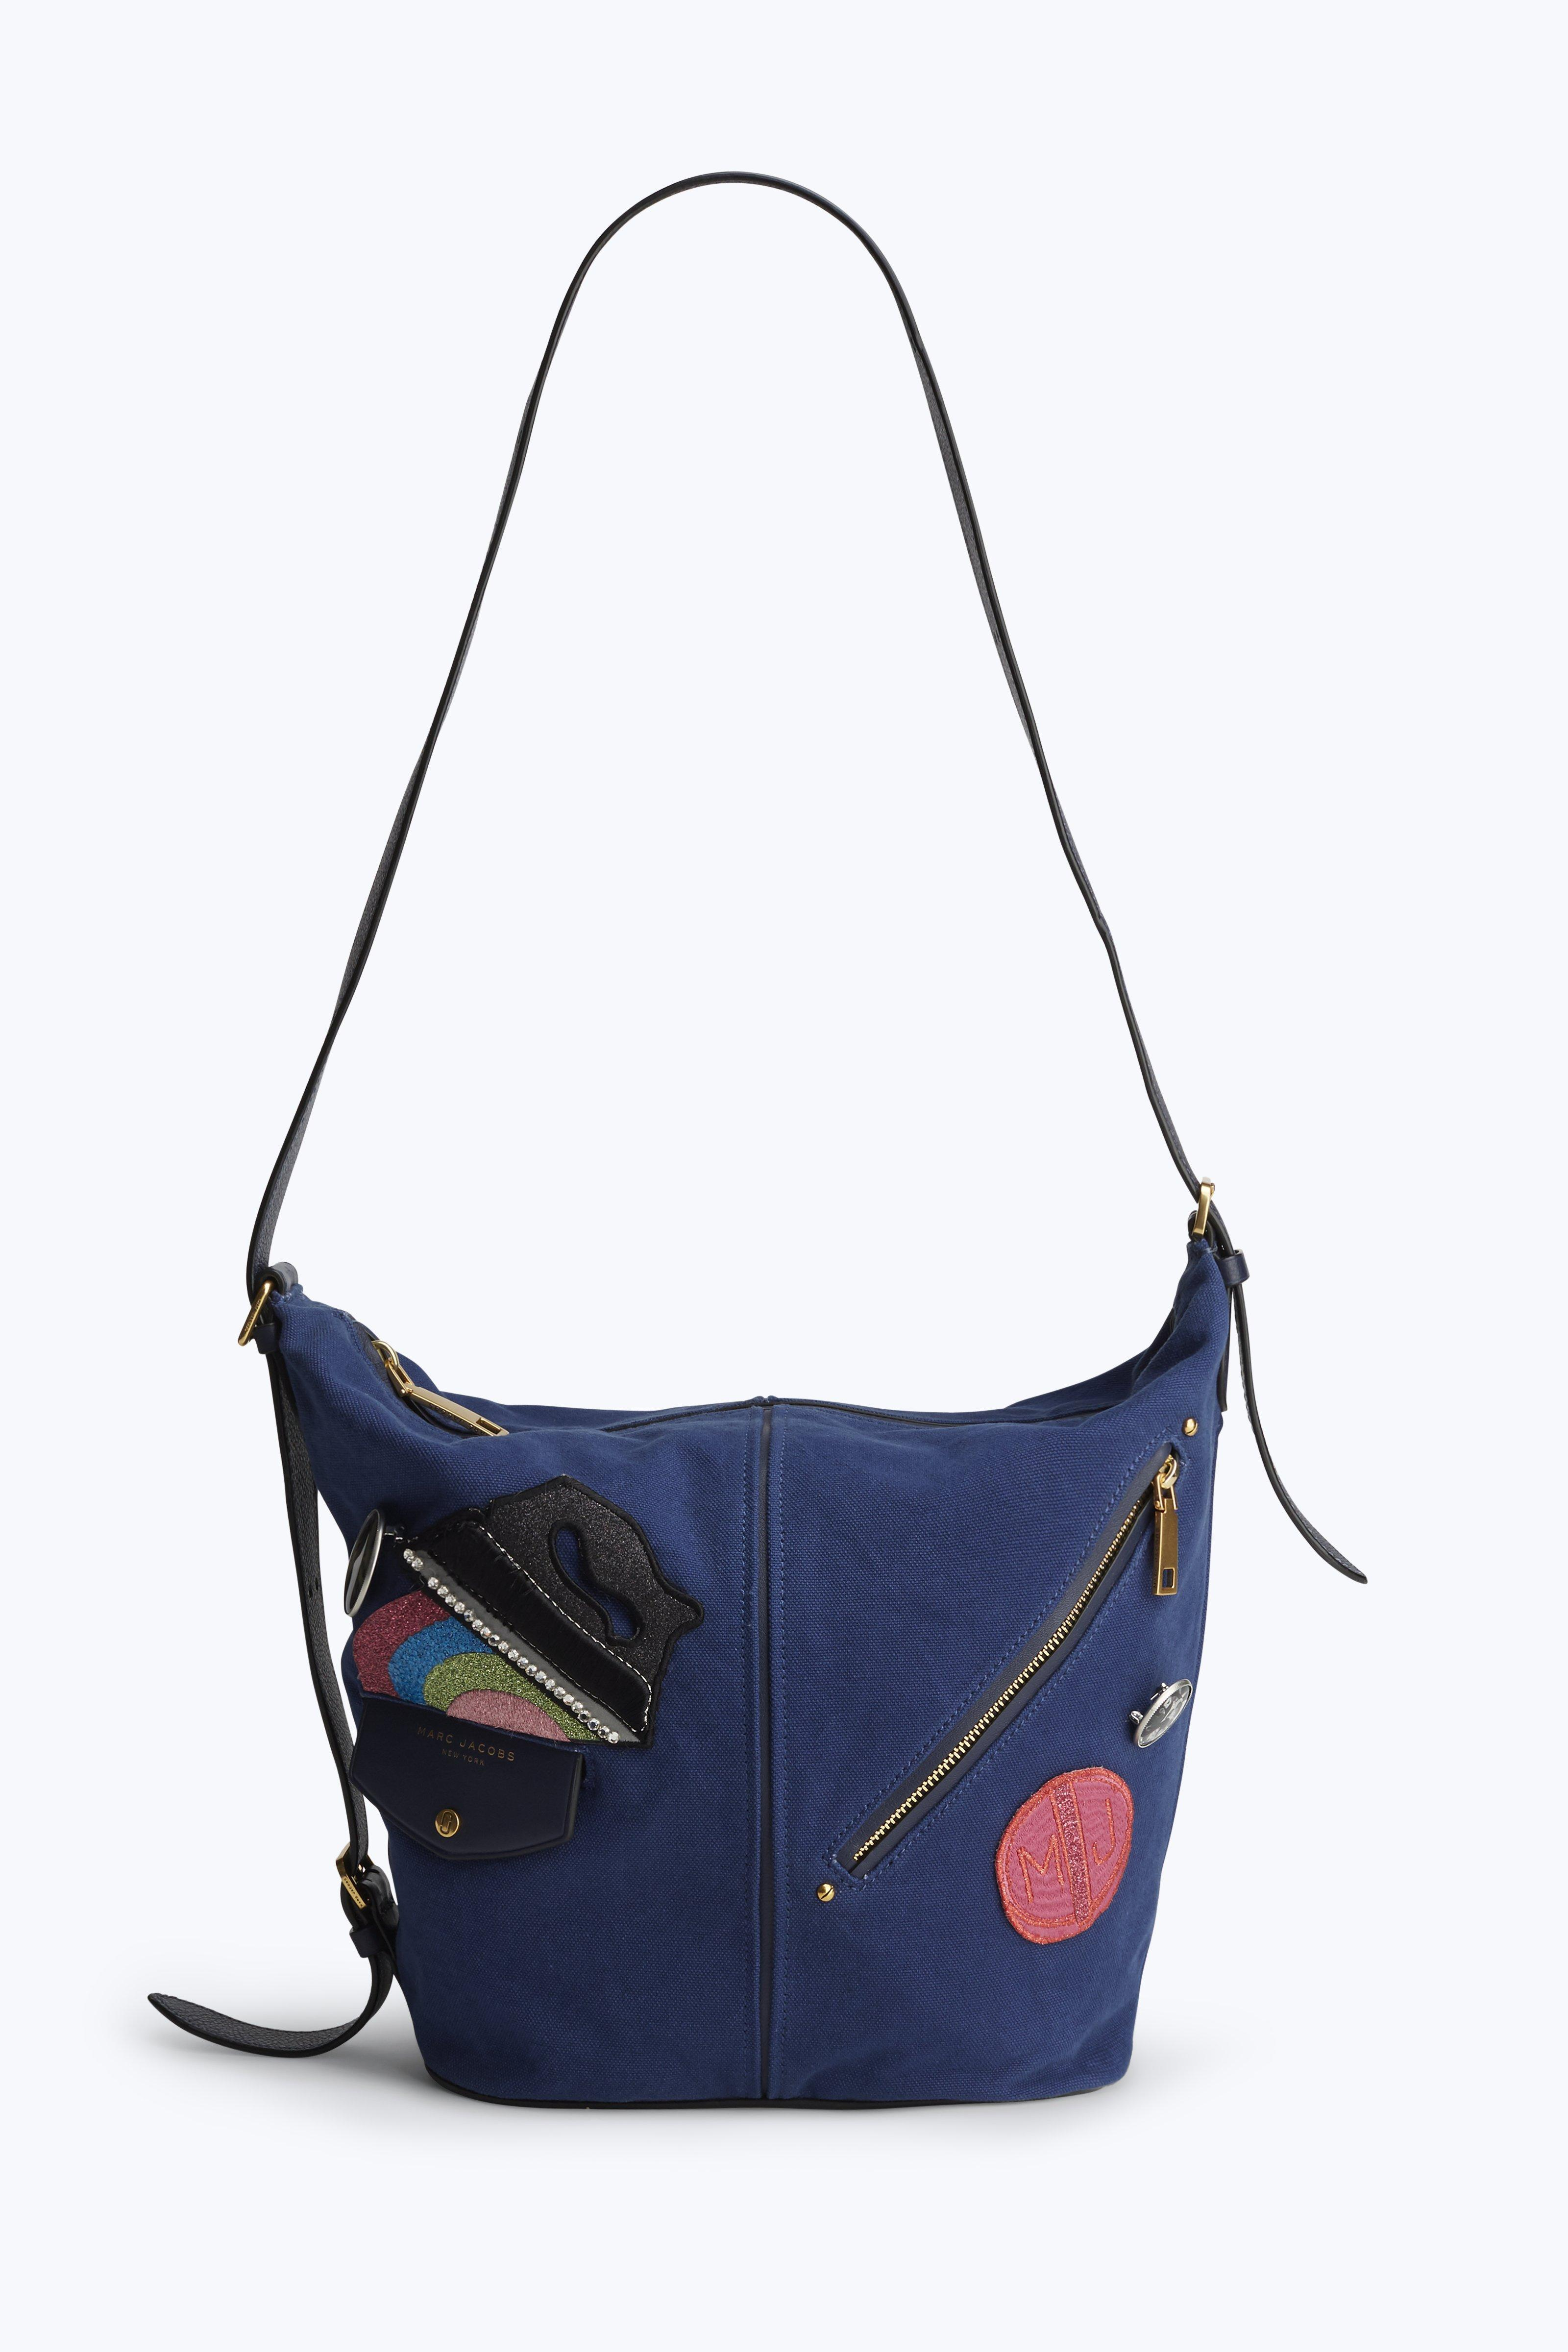 Marc Jacobs The Canvas Sling In Blue